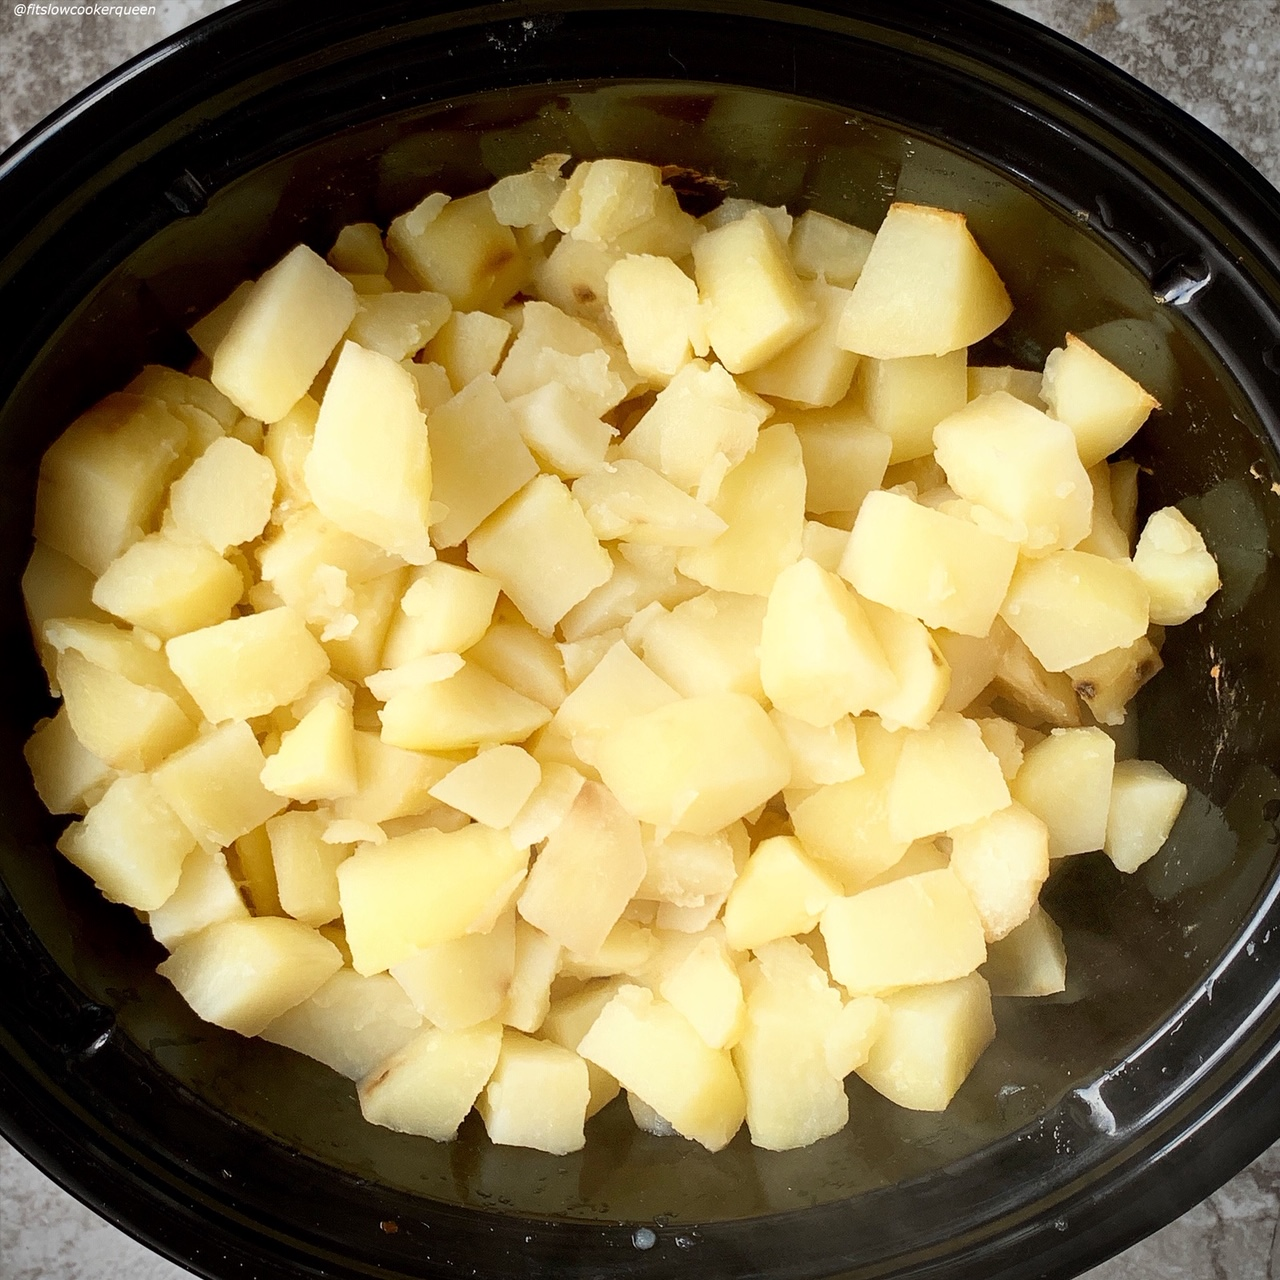 cooked potatoes in the slow cooker